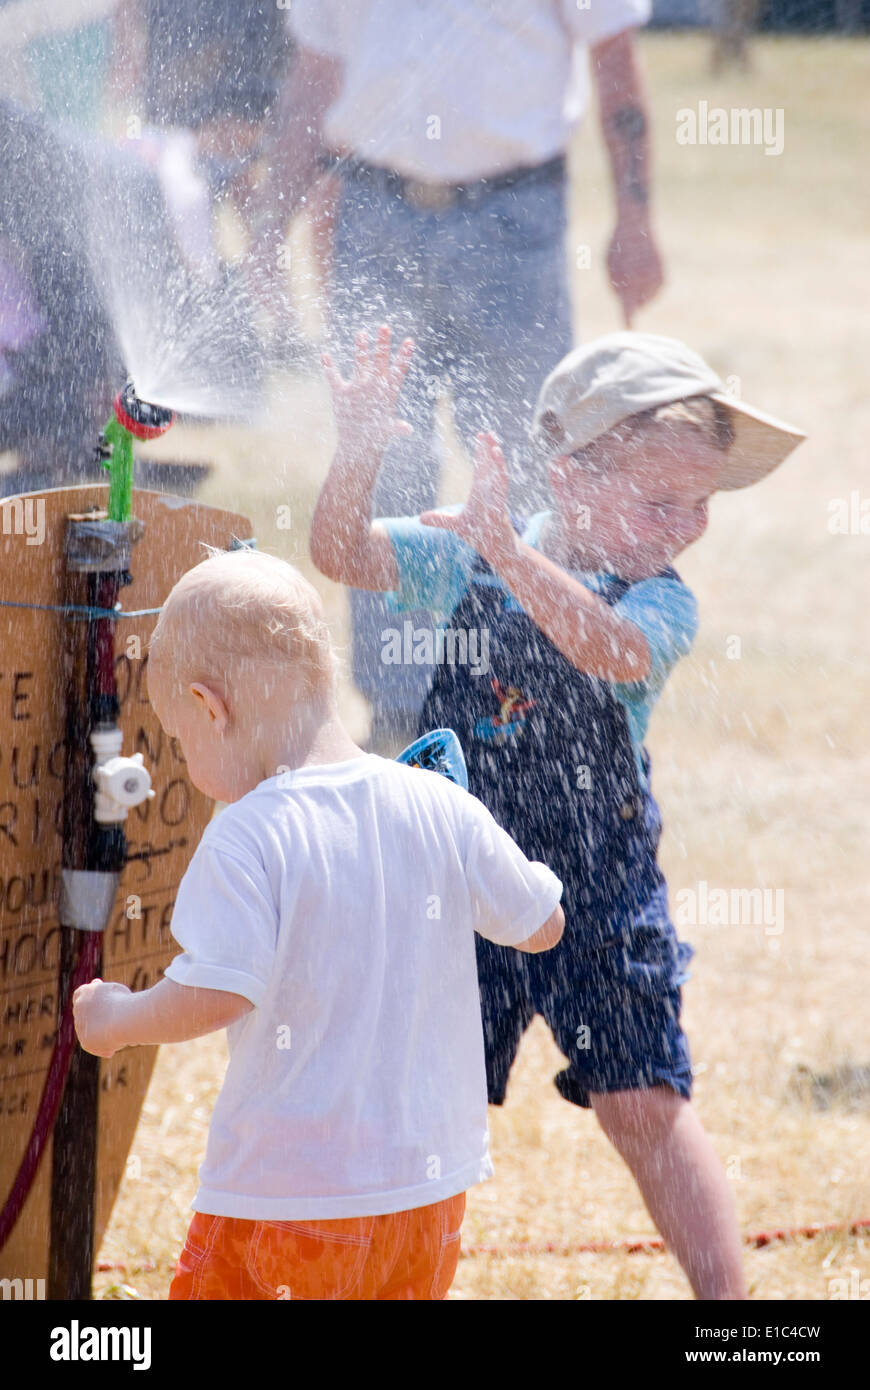 Tewkesbury Medieval Festival, Gloucester UK July 2013: children cooling off playing in water spray on a very hot Stock Photo